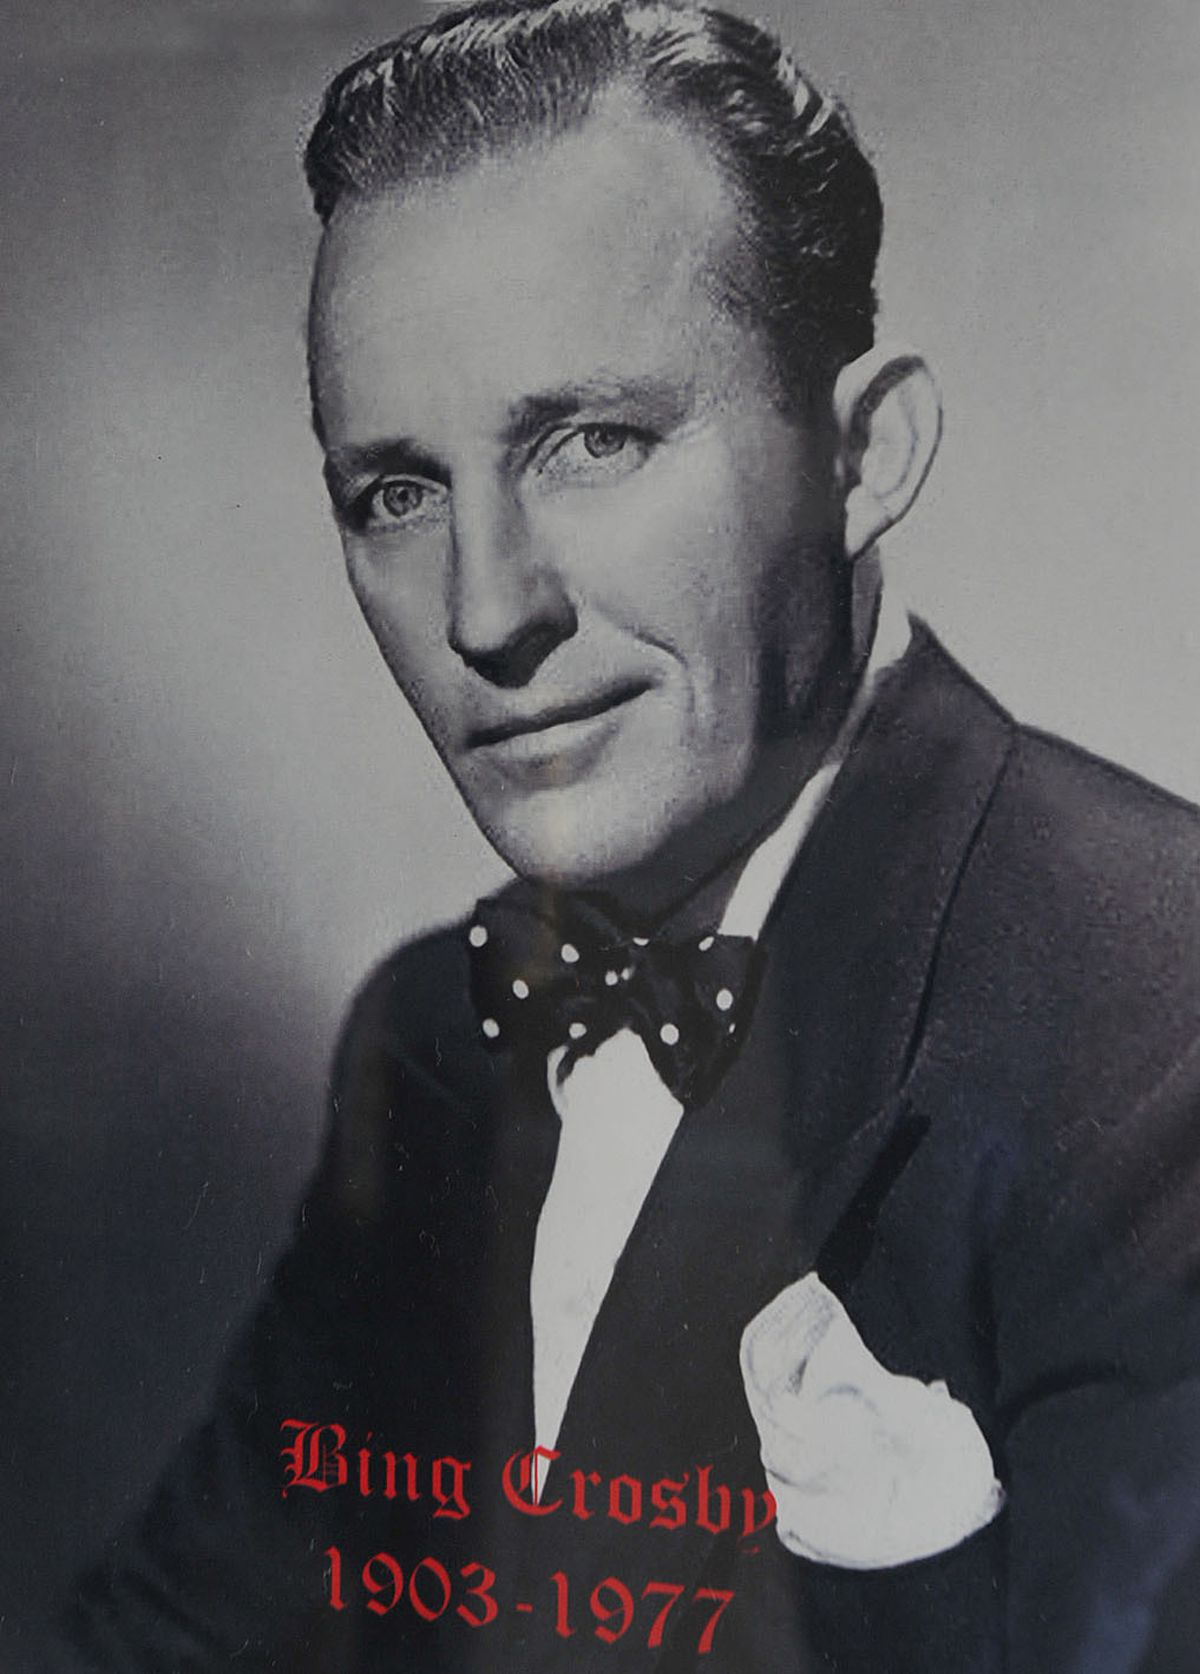 Bing Crosby was also a hotel guest